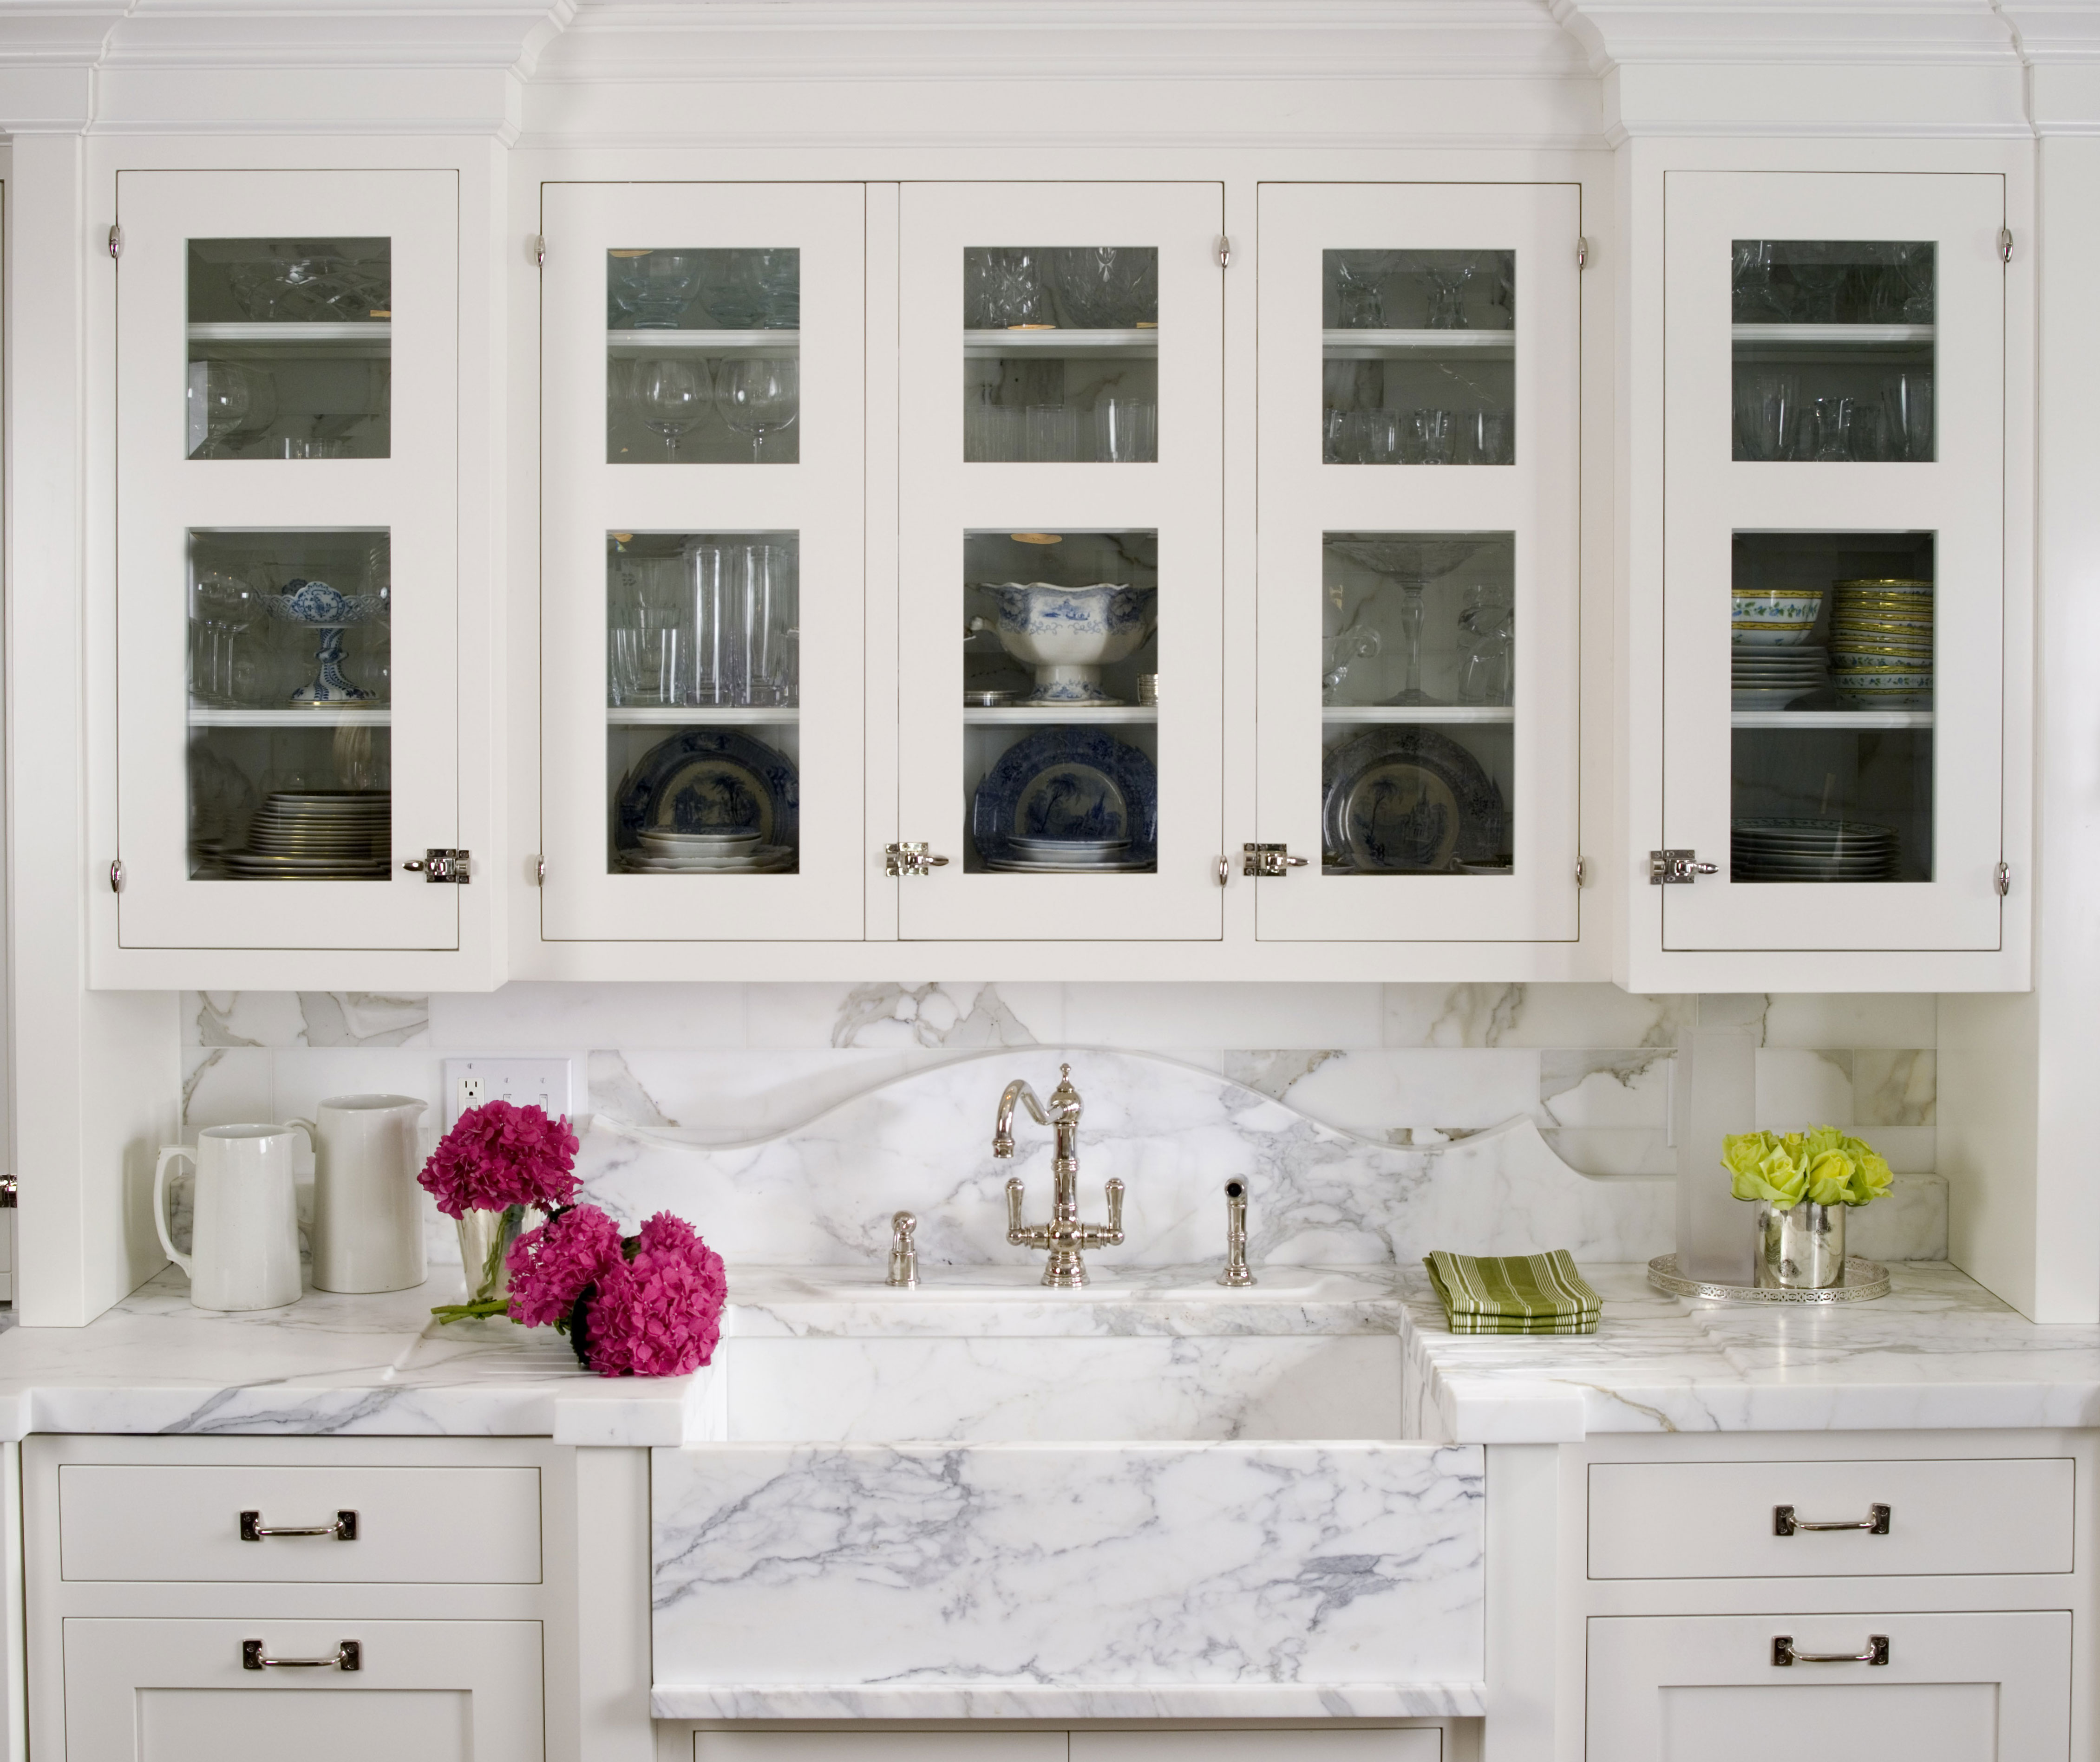 White Kitchen Design 2014 ☆▻ kitchen design : trust white kitchen designs white kitchen